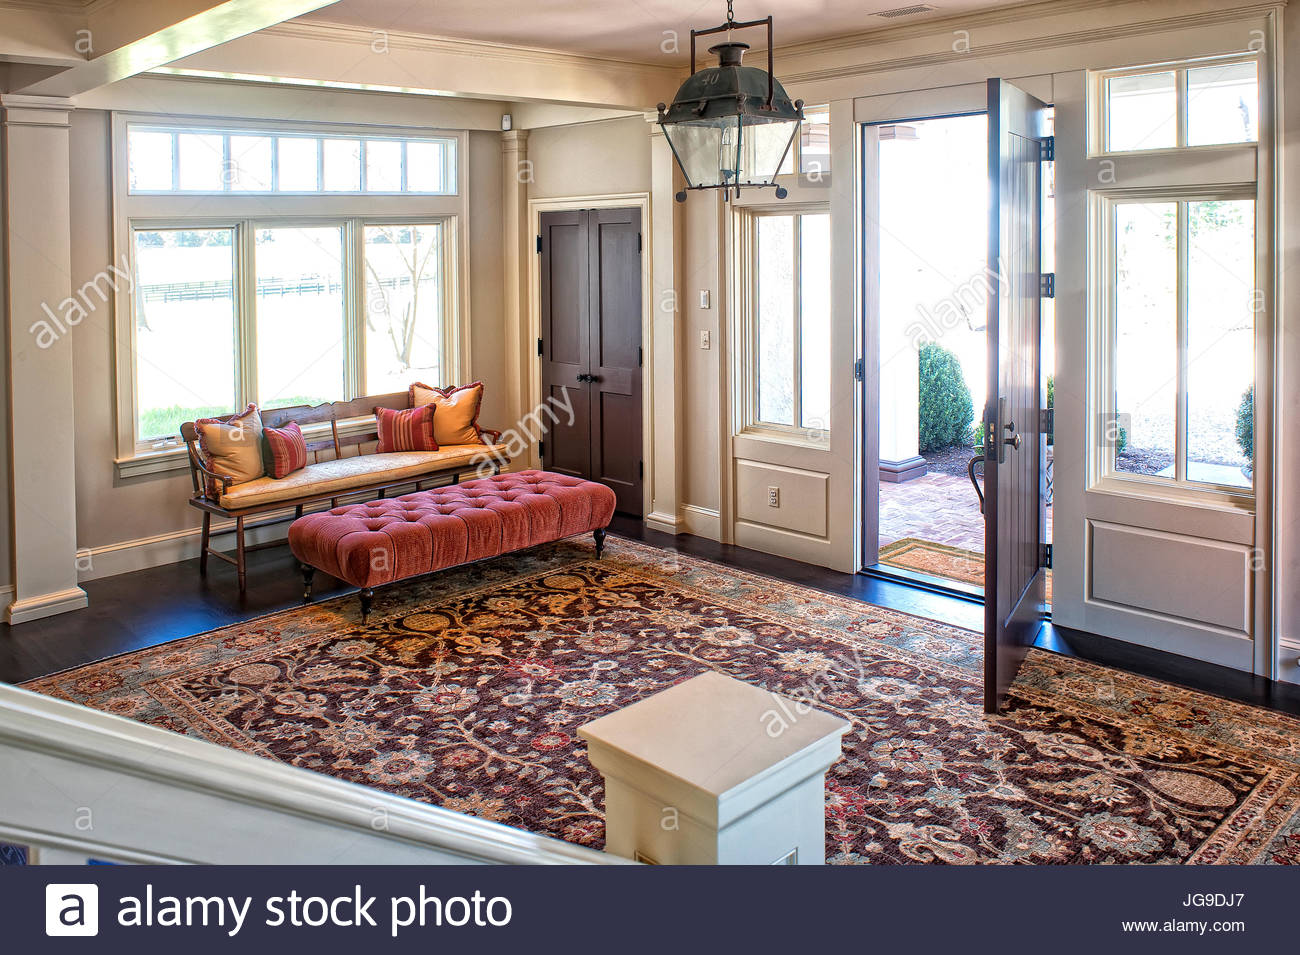 Large Foyer Entryway Wood Bench With Cushion And Pillows Antique Chandelier Area Rug Farmhouse Country Decor